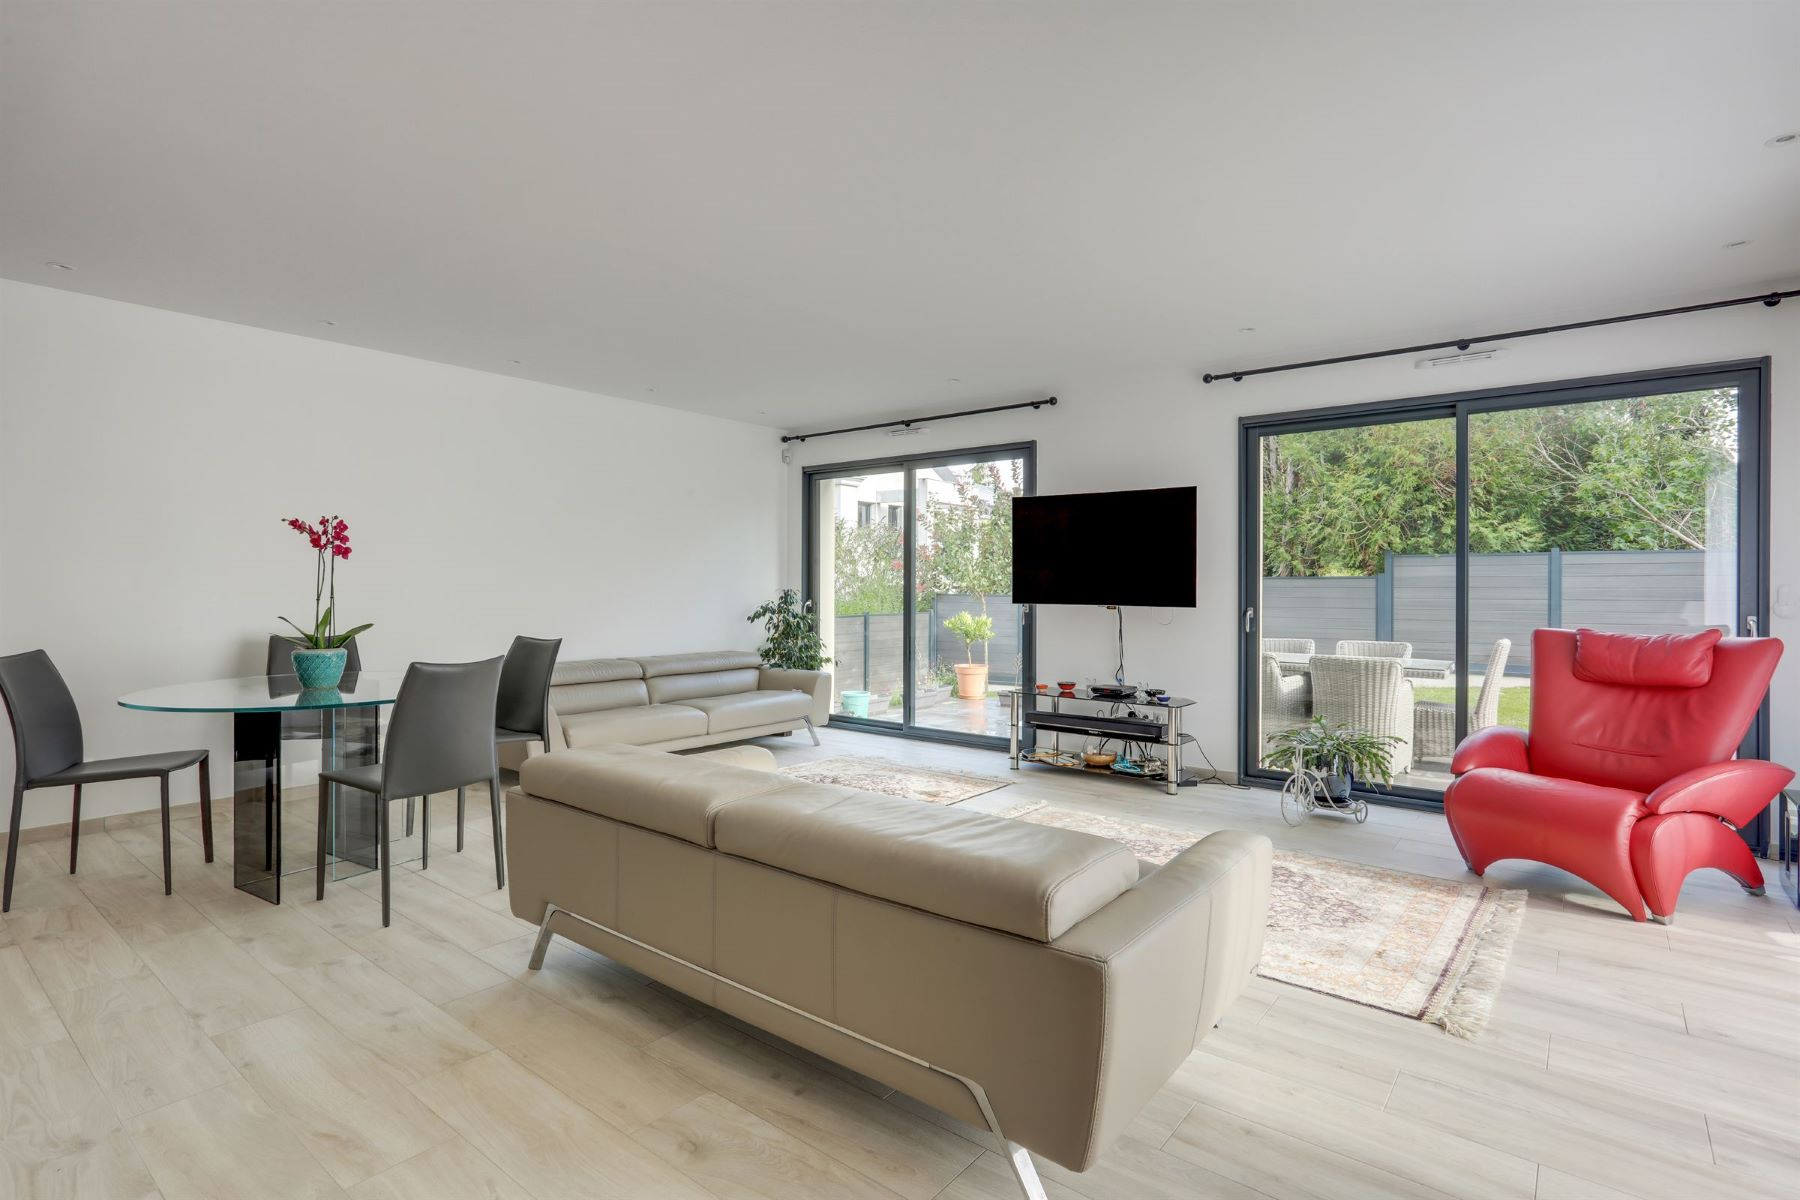 Single Family Homes for Active at Magnificent contemporary mansion in Rueil-Malmaison Rueil Malmaison, Ile-De-France 92500 France